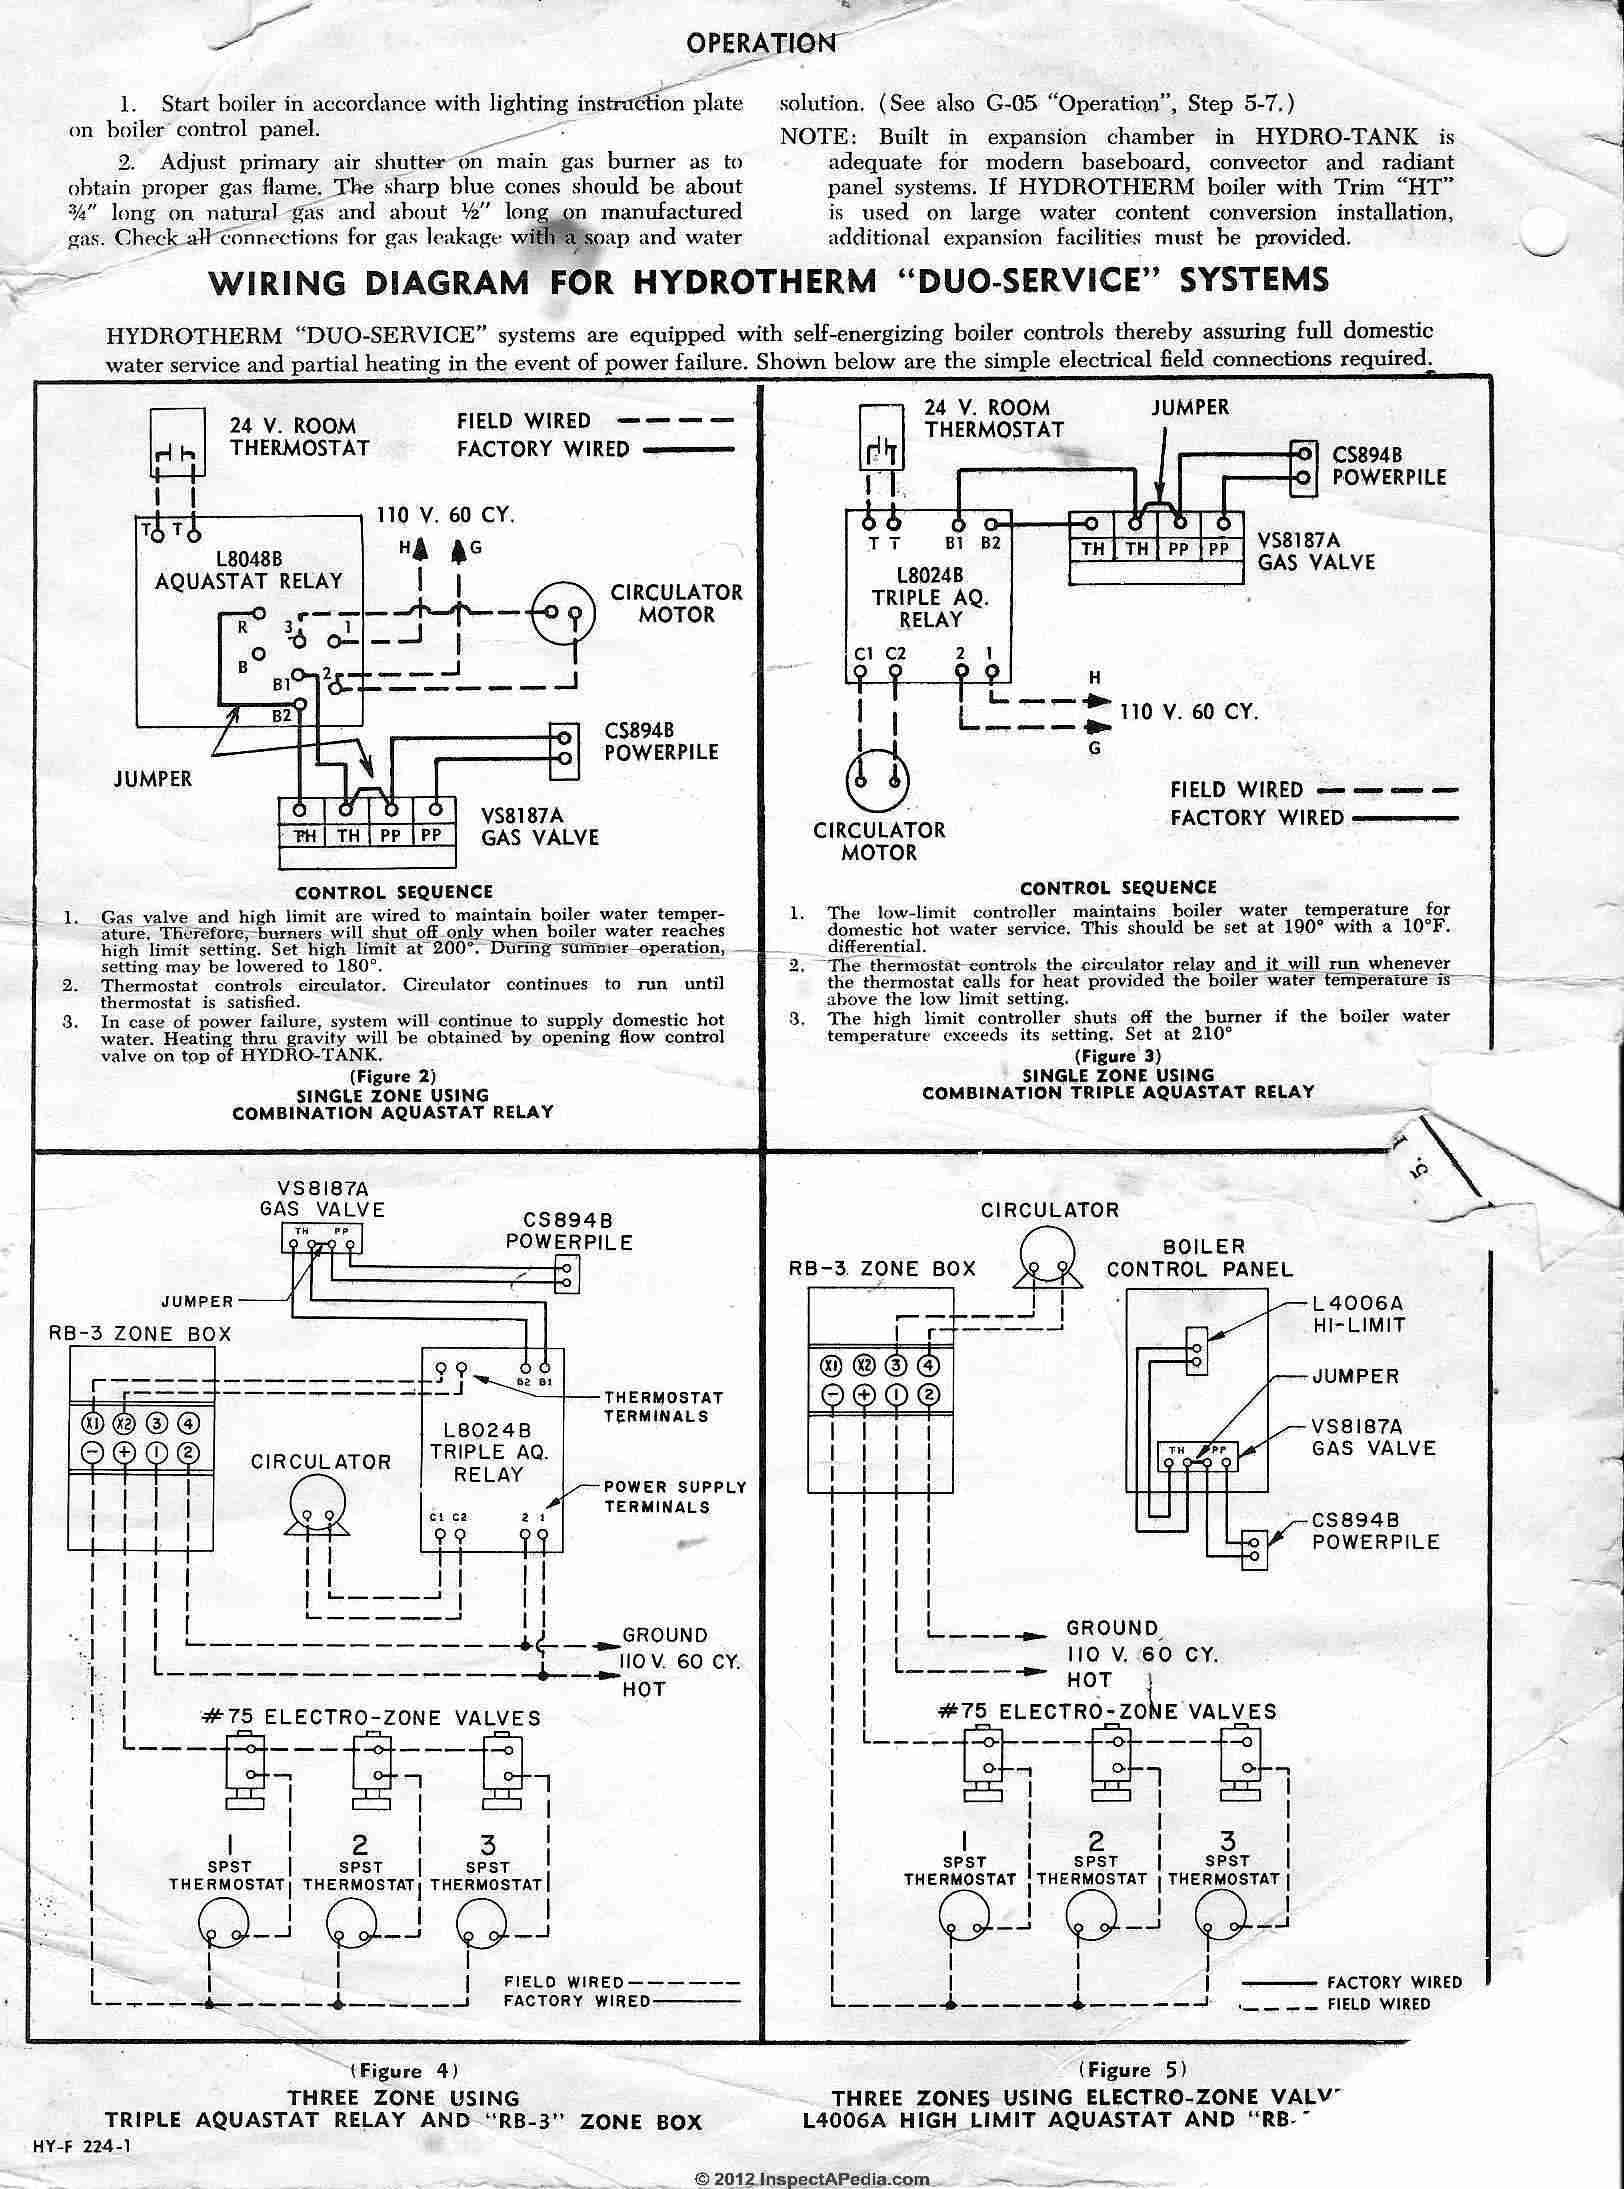 L8024B_Aquastat_0422_DJFcs honeywell l7224 wiring diagram honeywell l7224u aquastat wiring Simple Wiring Schematics at crackthecode.co